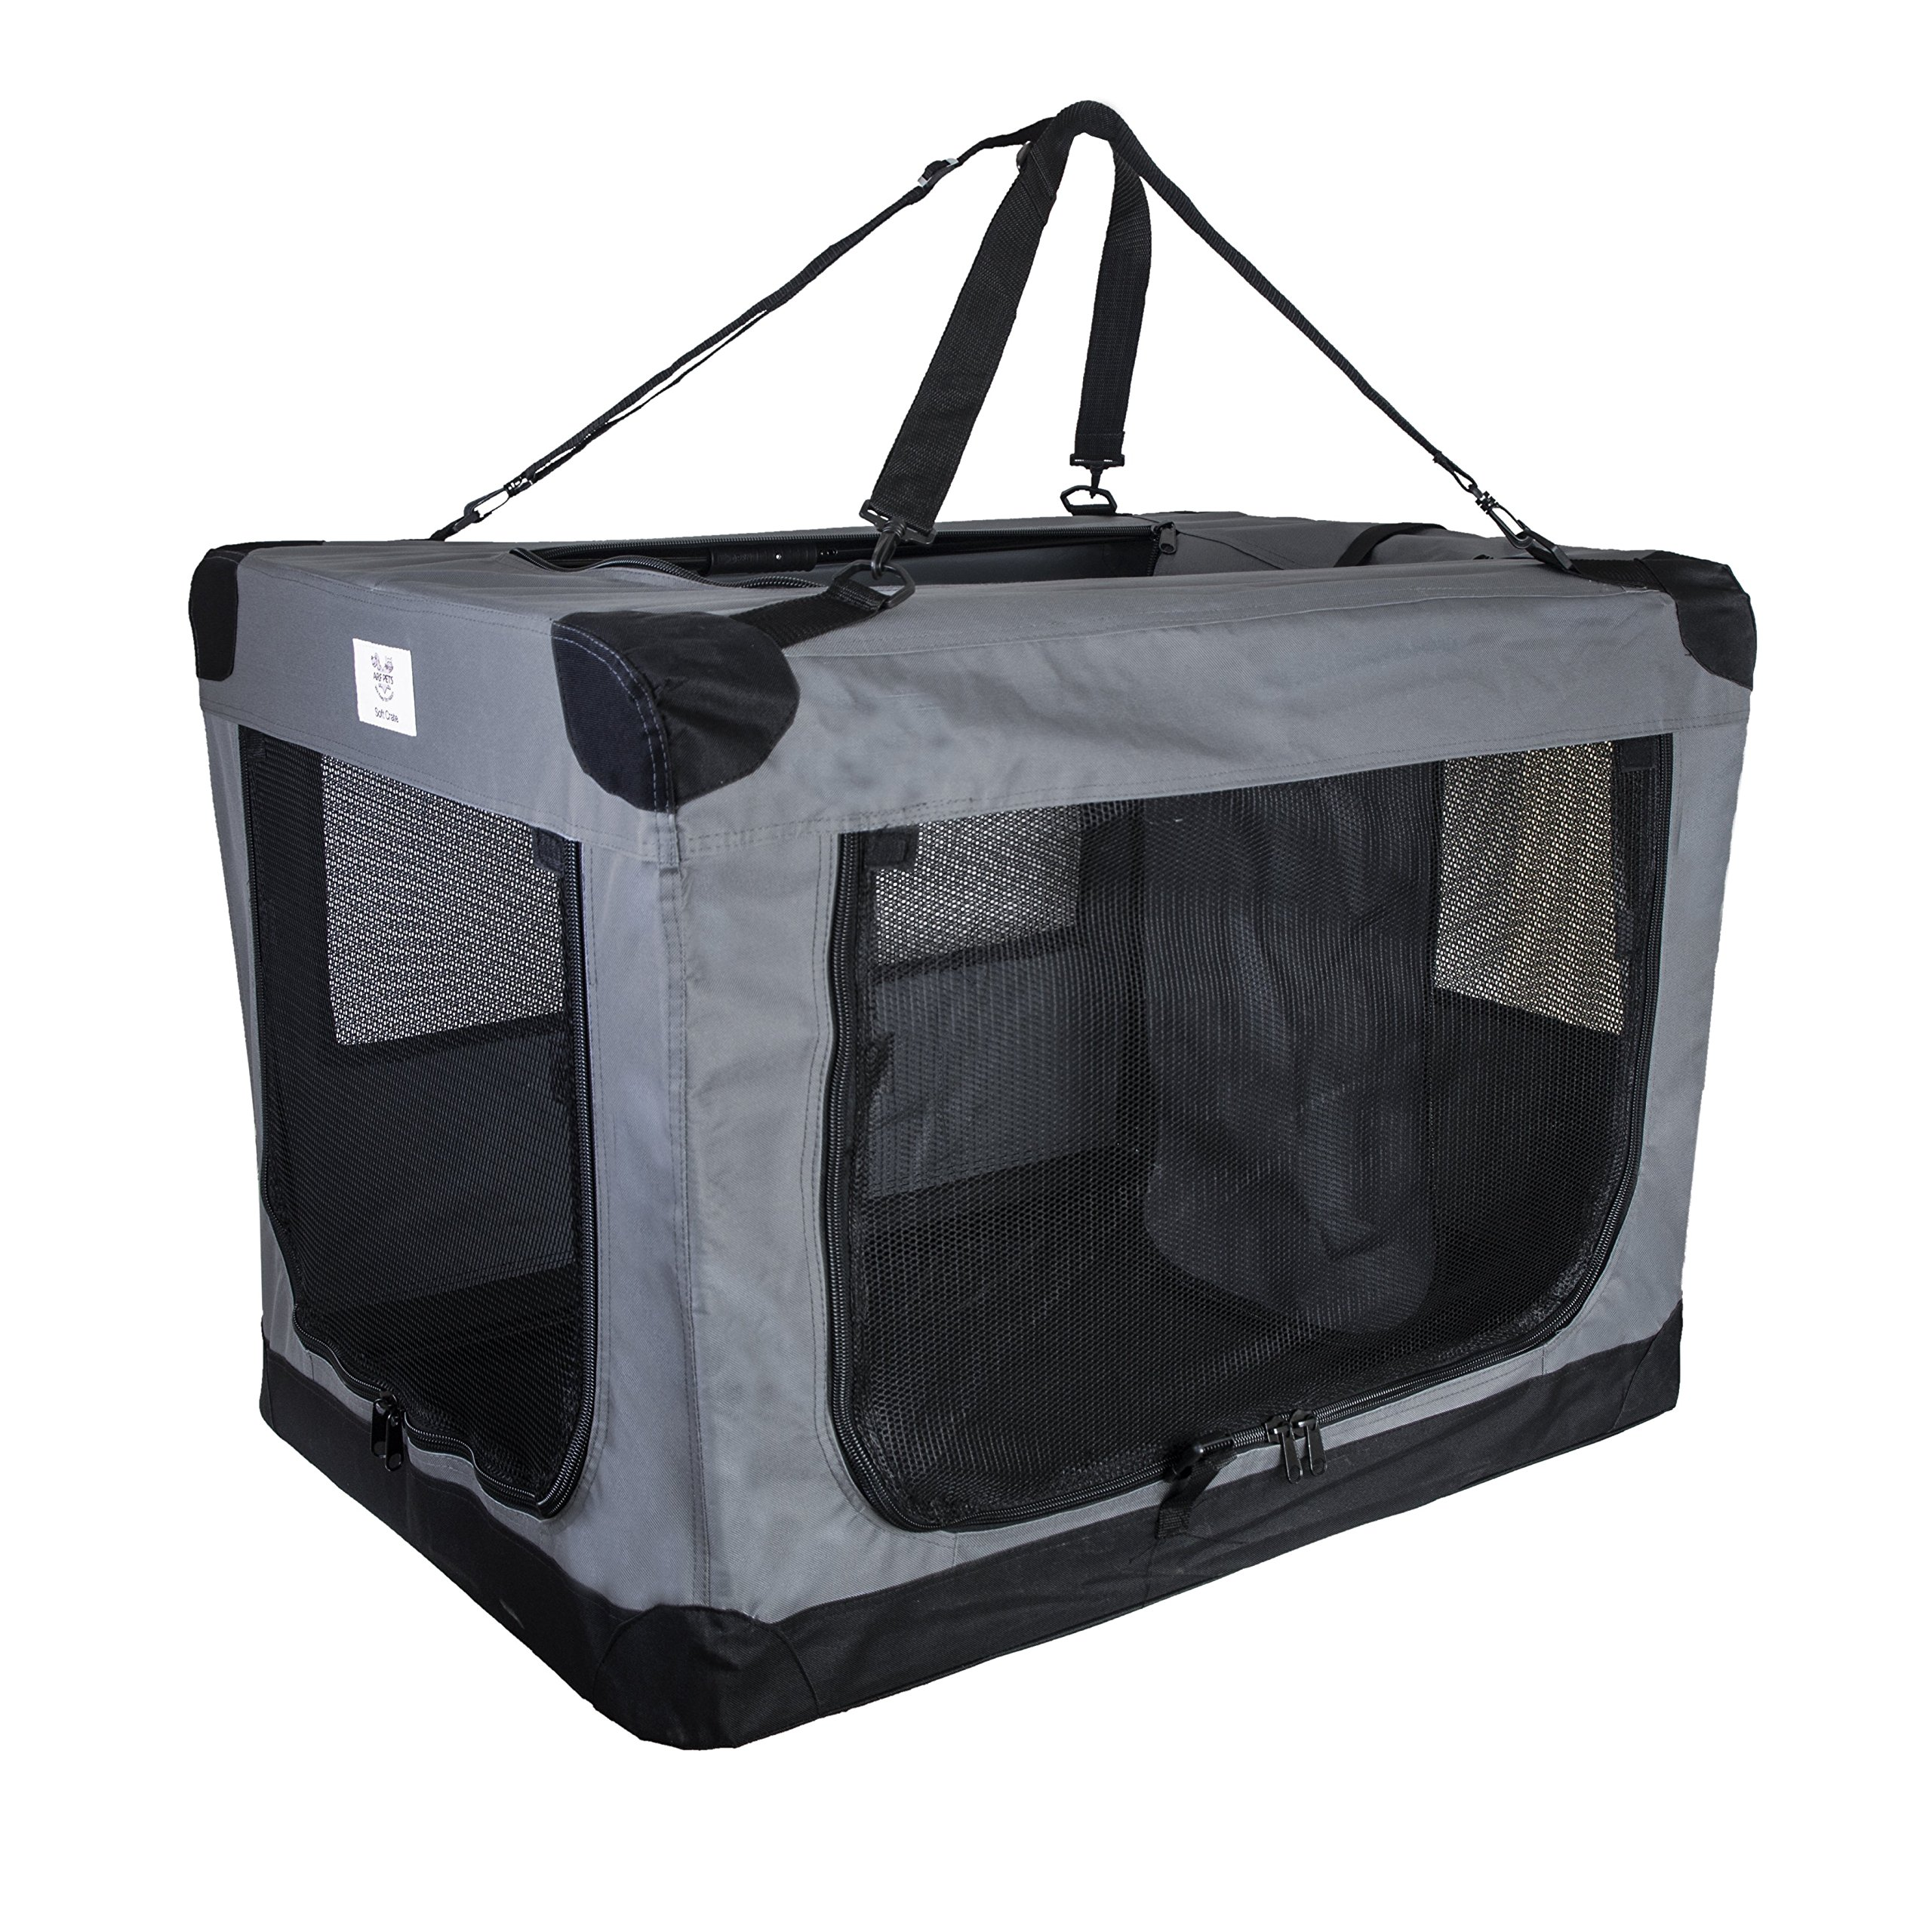 Arf Pets Dog Soft Crate 36 Inch Kennel for Pet Indoor Home & Outdoor Use - Soft Sided 3 Door Folding Travel Carrier with Straps by Arf Pets (Image #5)